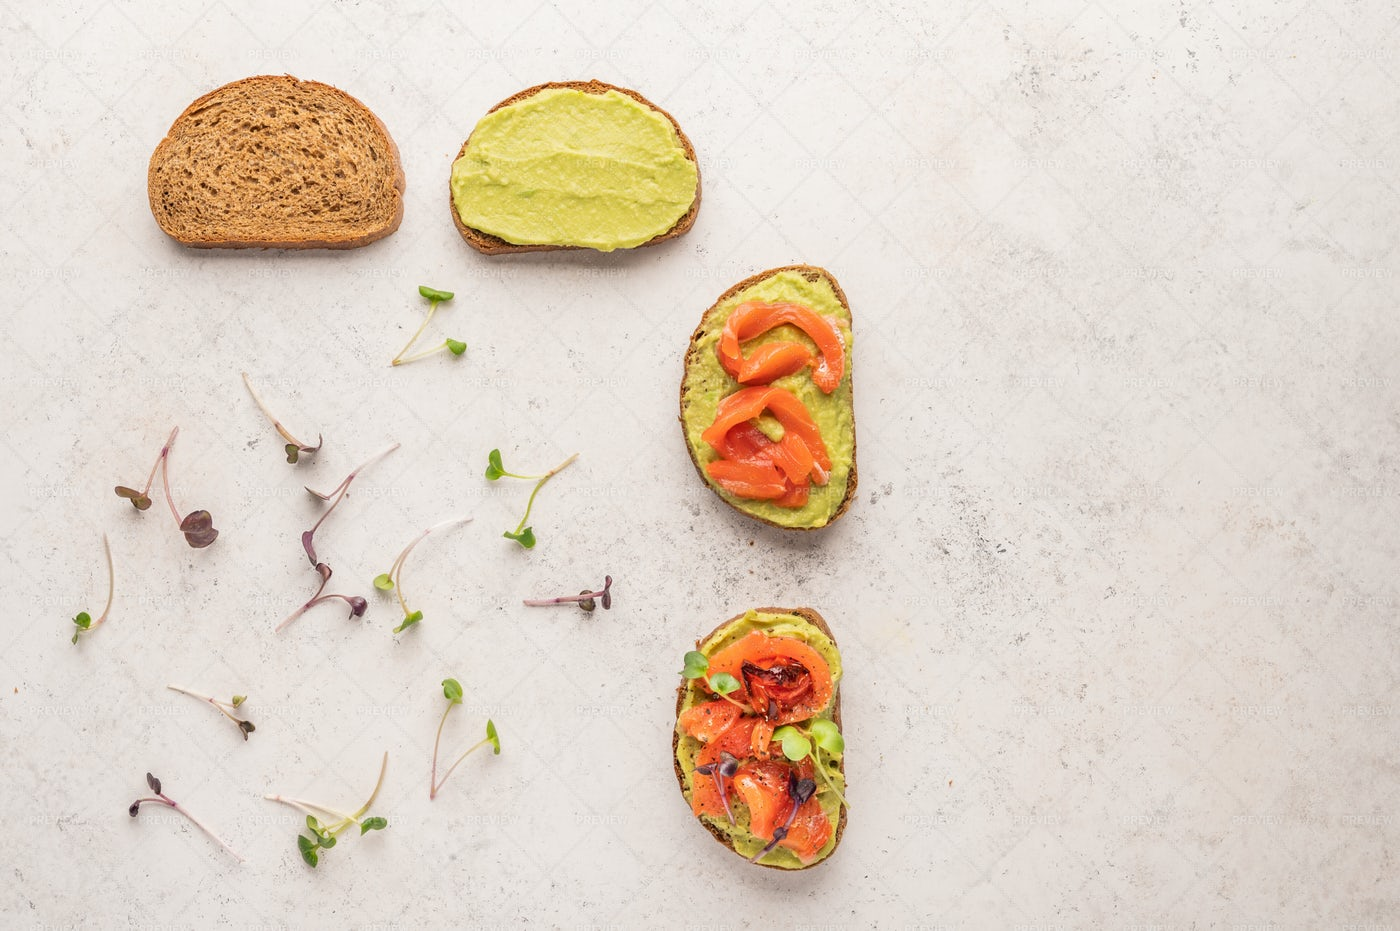 Making Of A Toasts: Stock Photos